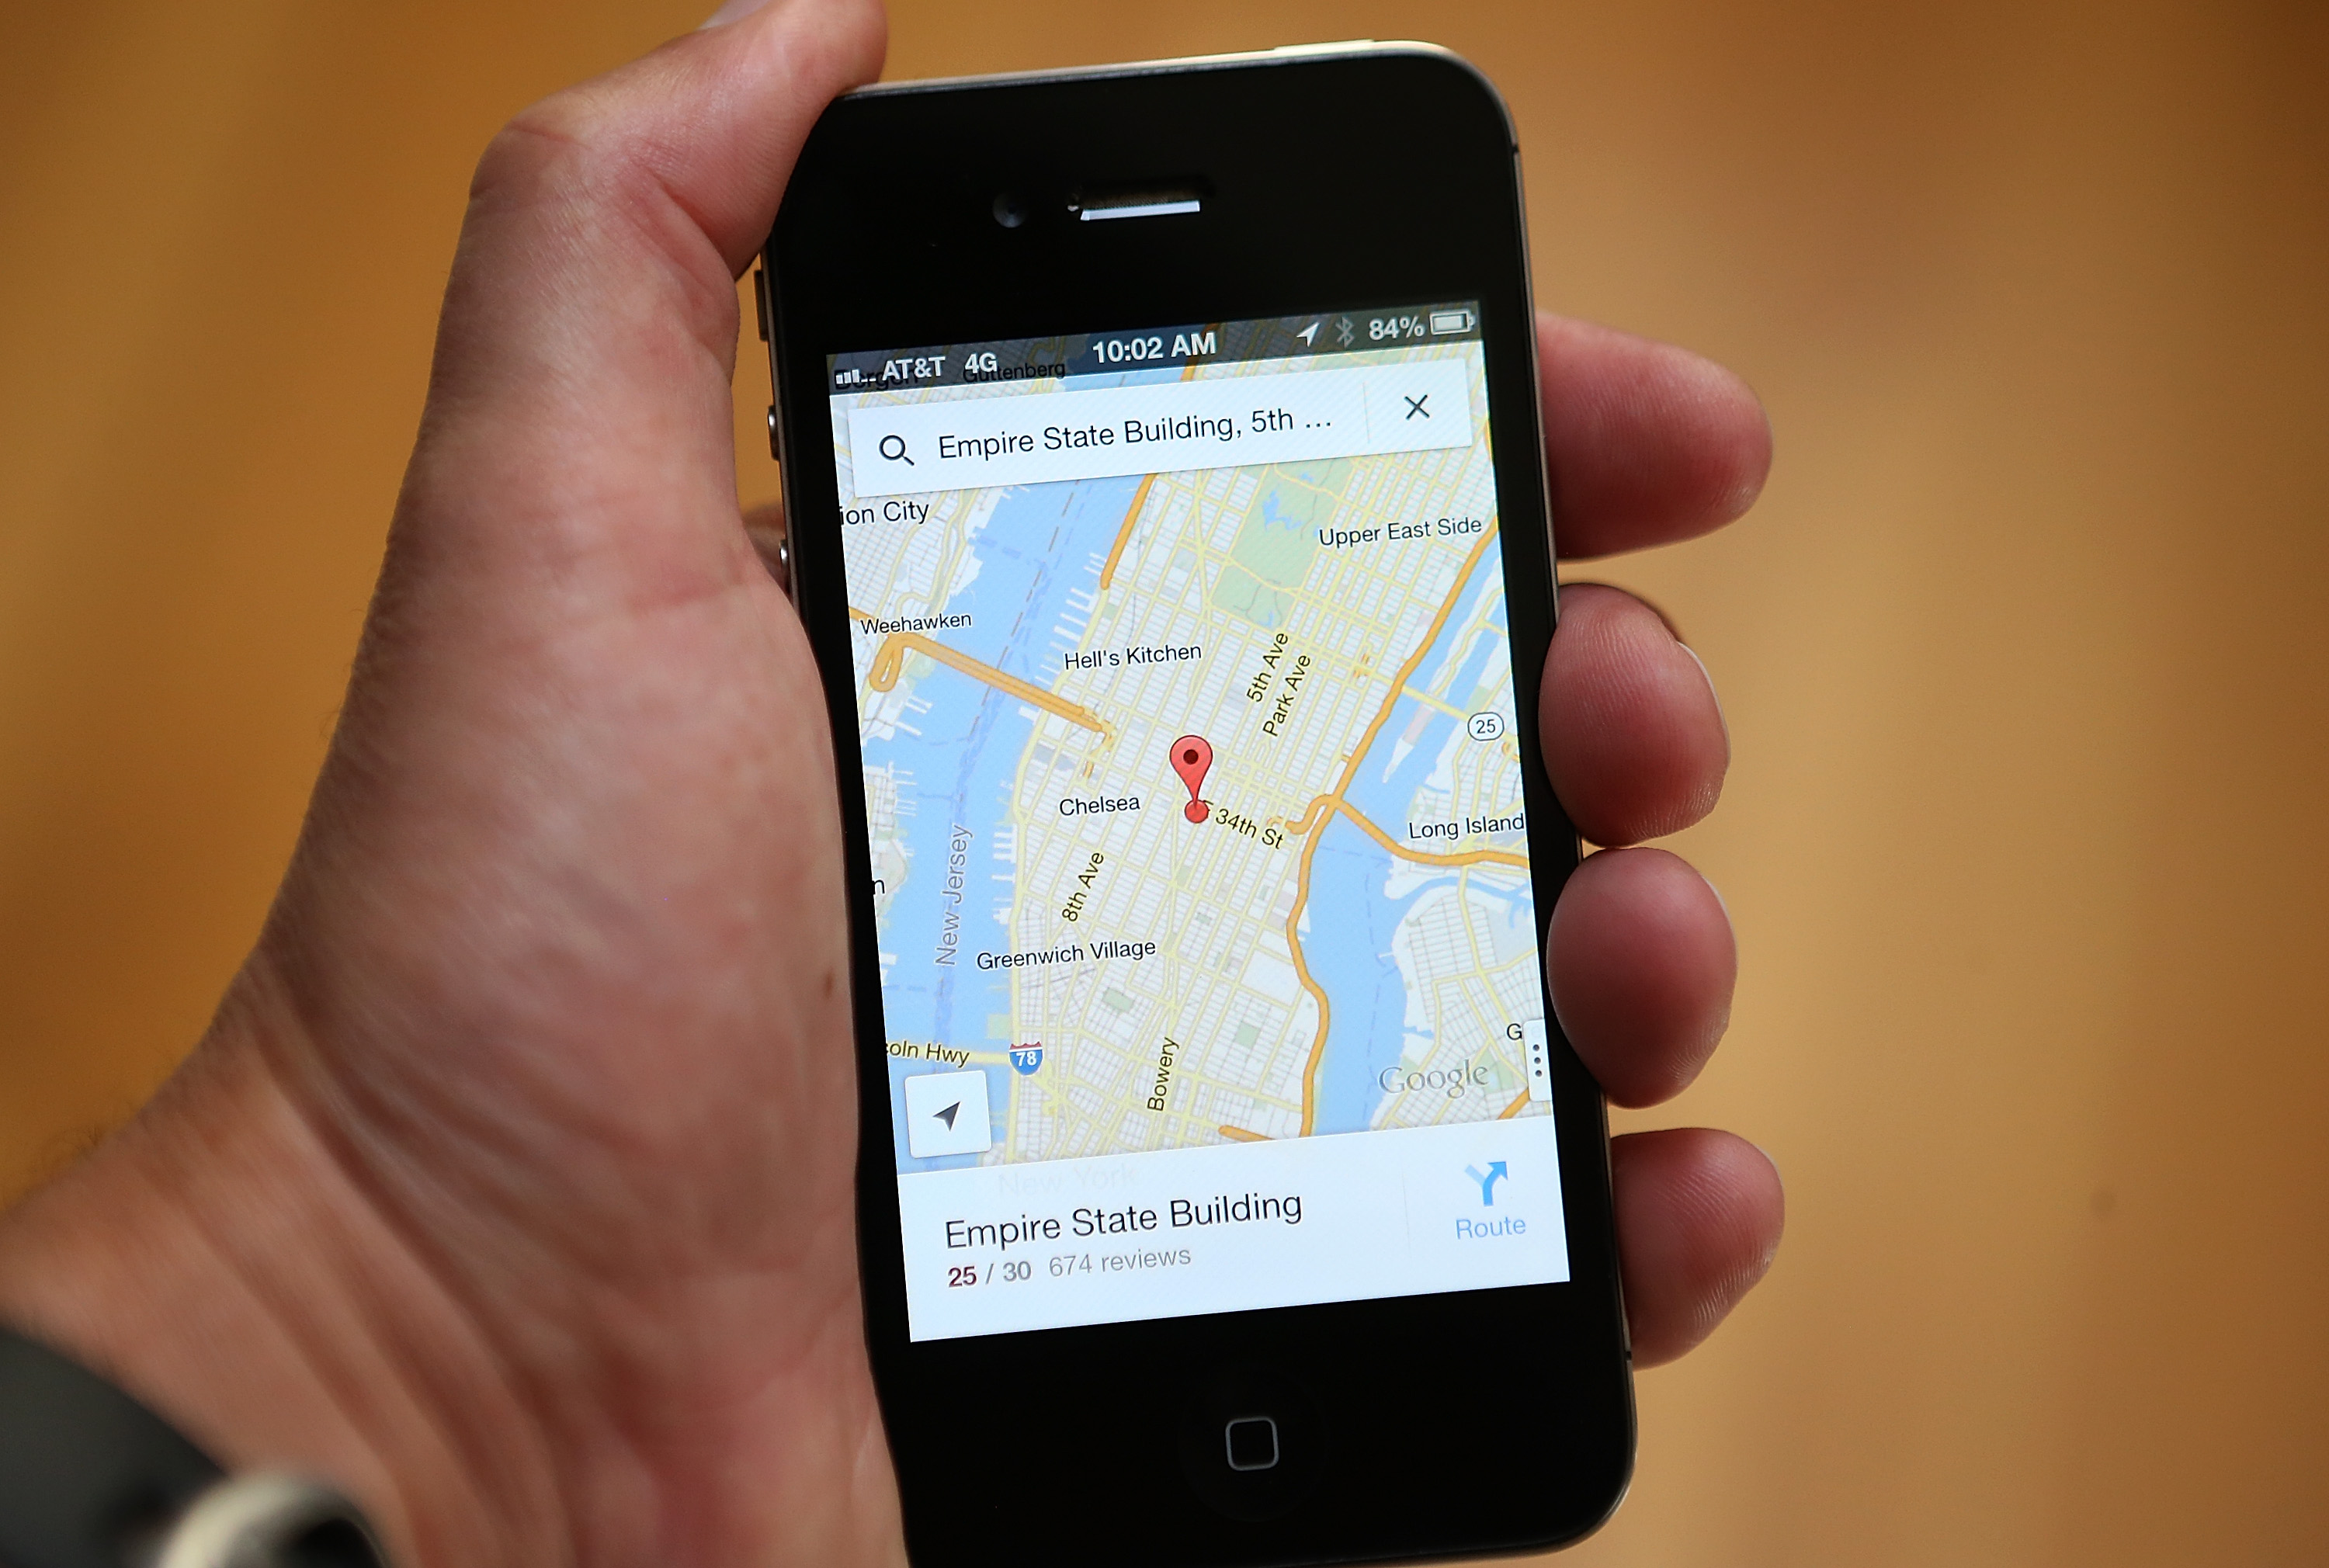 Apple maps app to compete with Google Maps after Updation